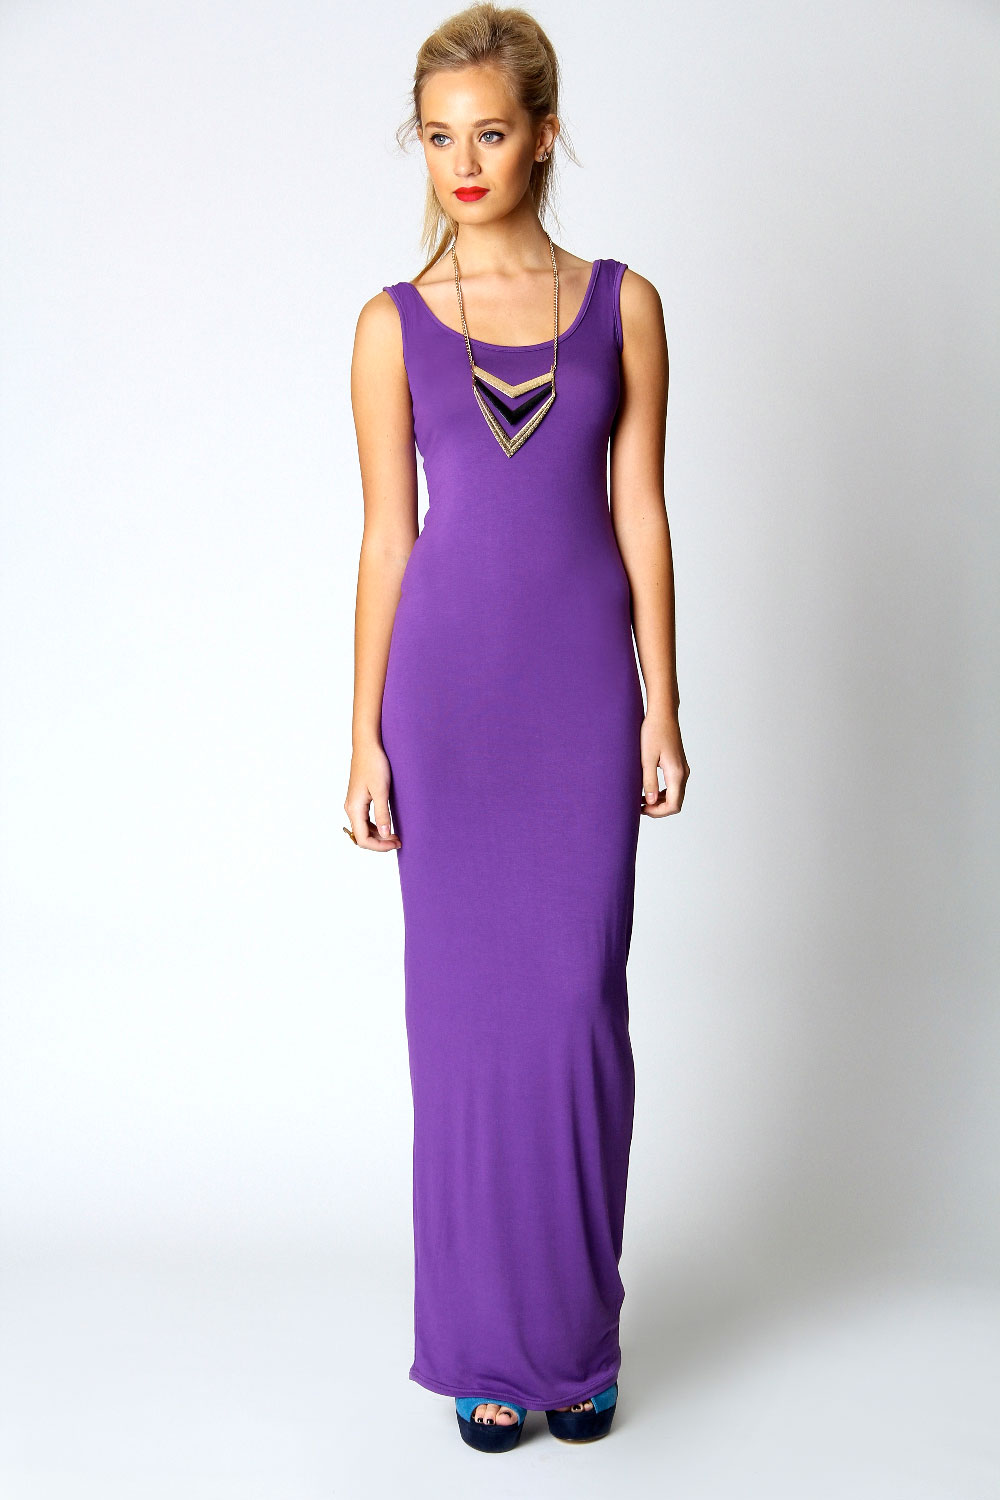 Full Length Sleeveless Dress